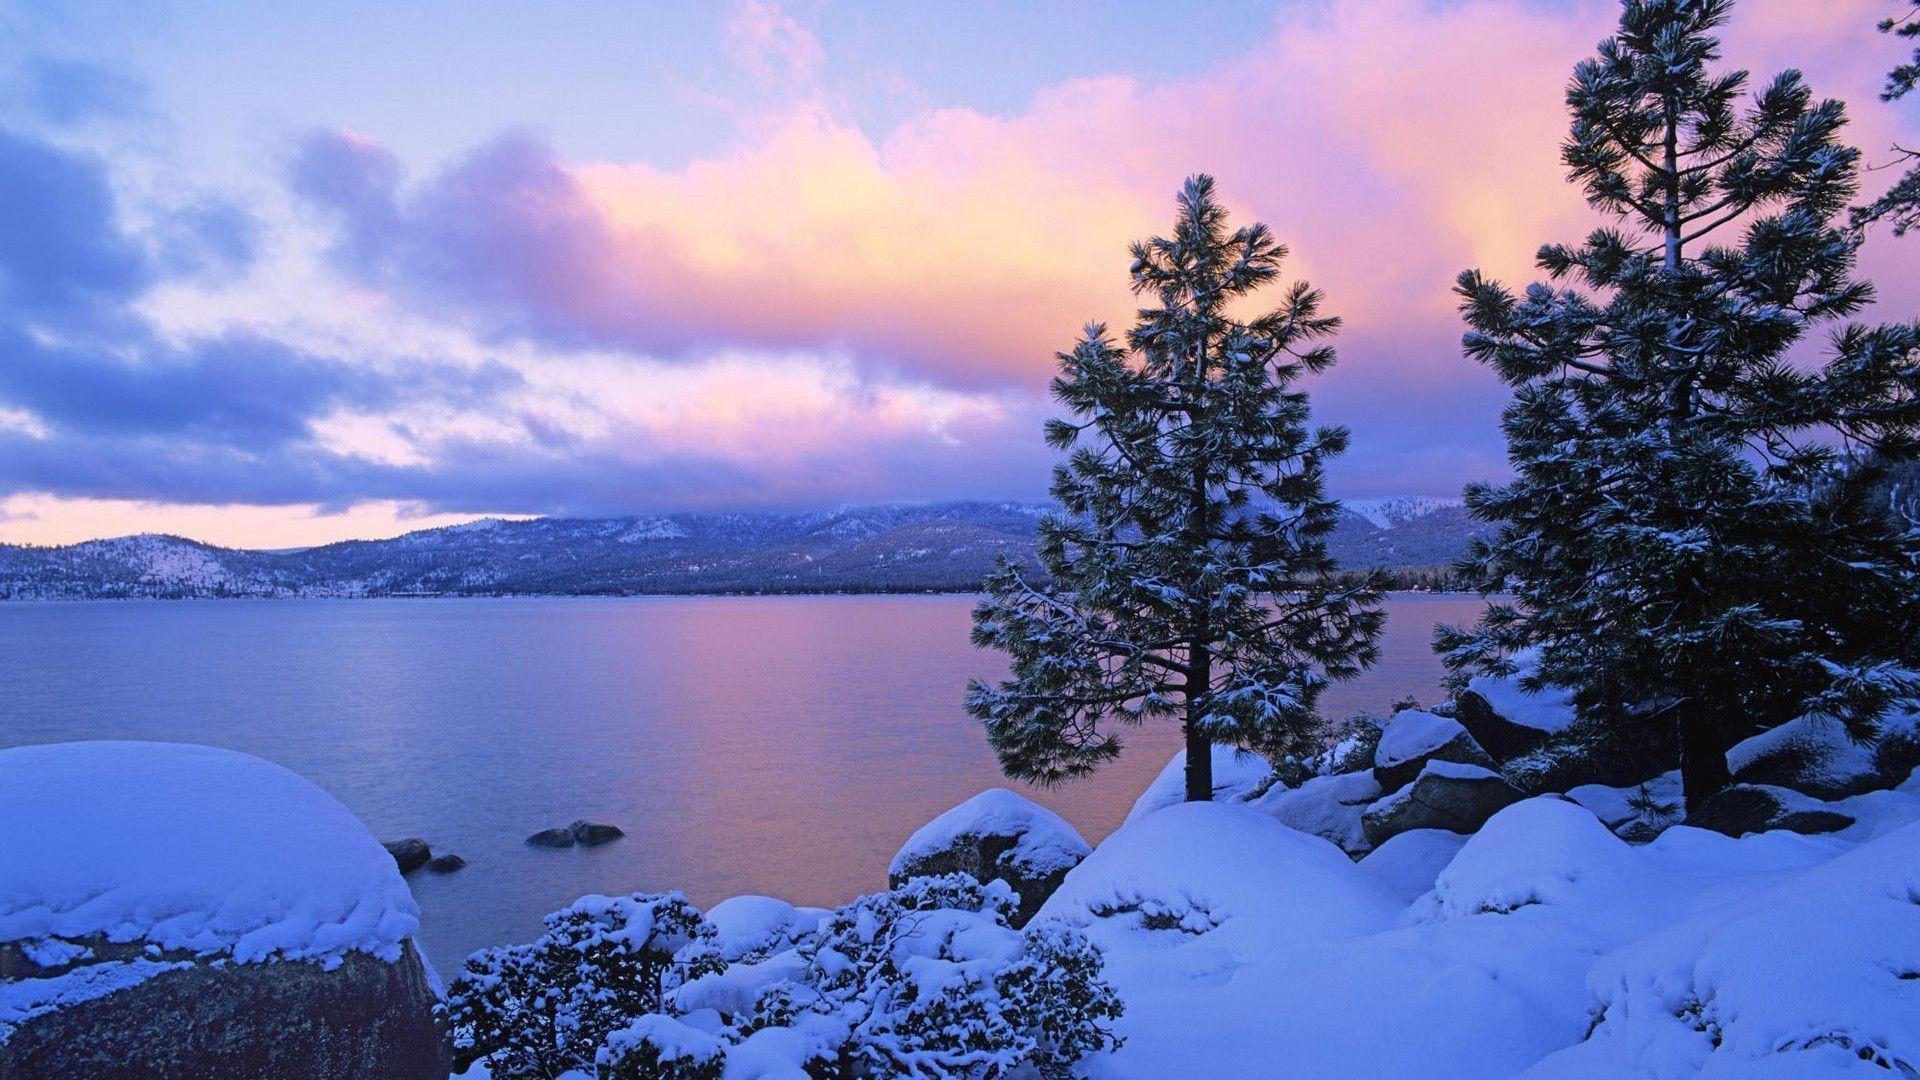 Lake at dusk in winter Wallpaper | 1920x1080 resolution wallpaper ...